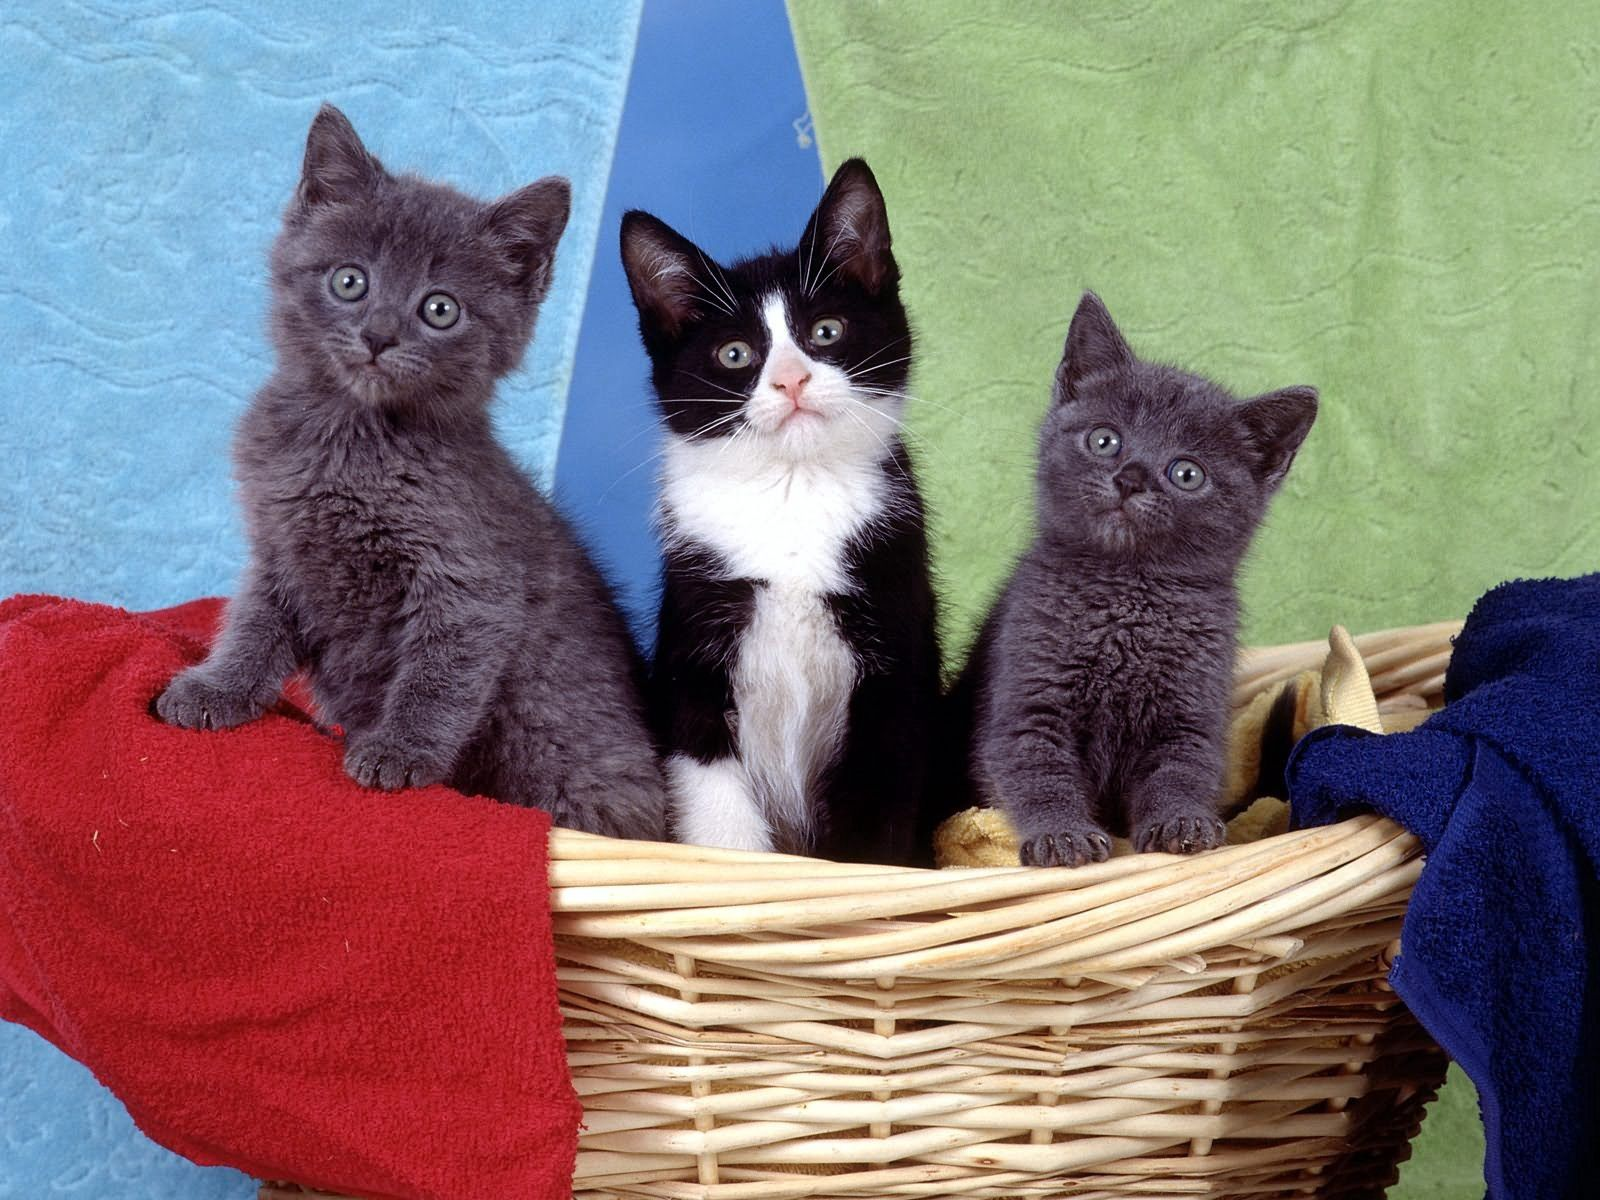 157036 Screensavers and Wallpapers Kittens for phone. Download Animals, Sit, Basket, Toddlers, Kids, Kittens pictures for free